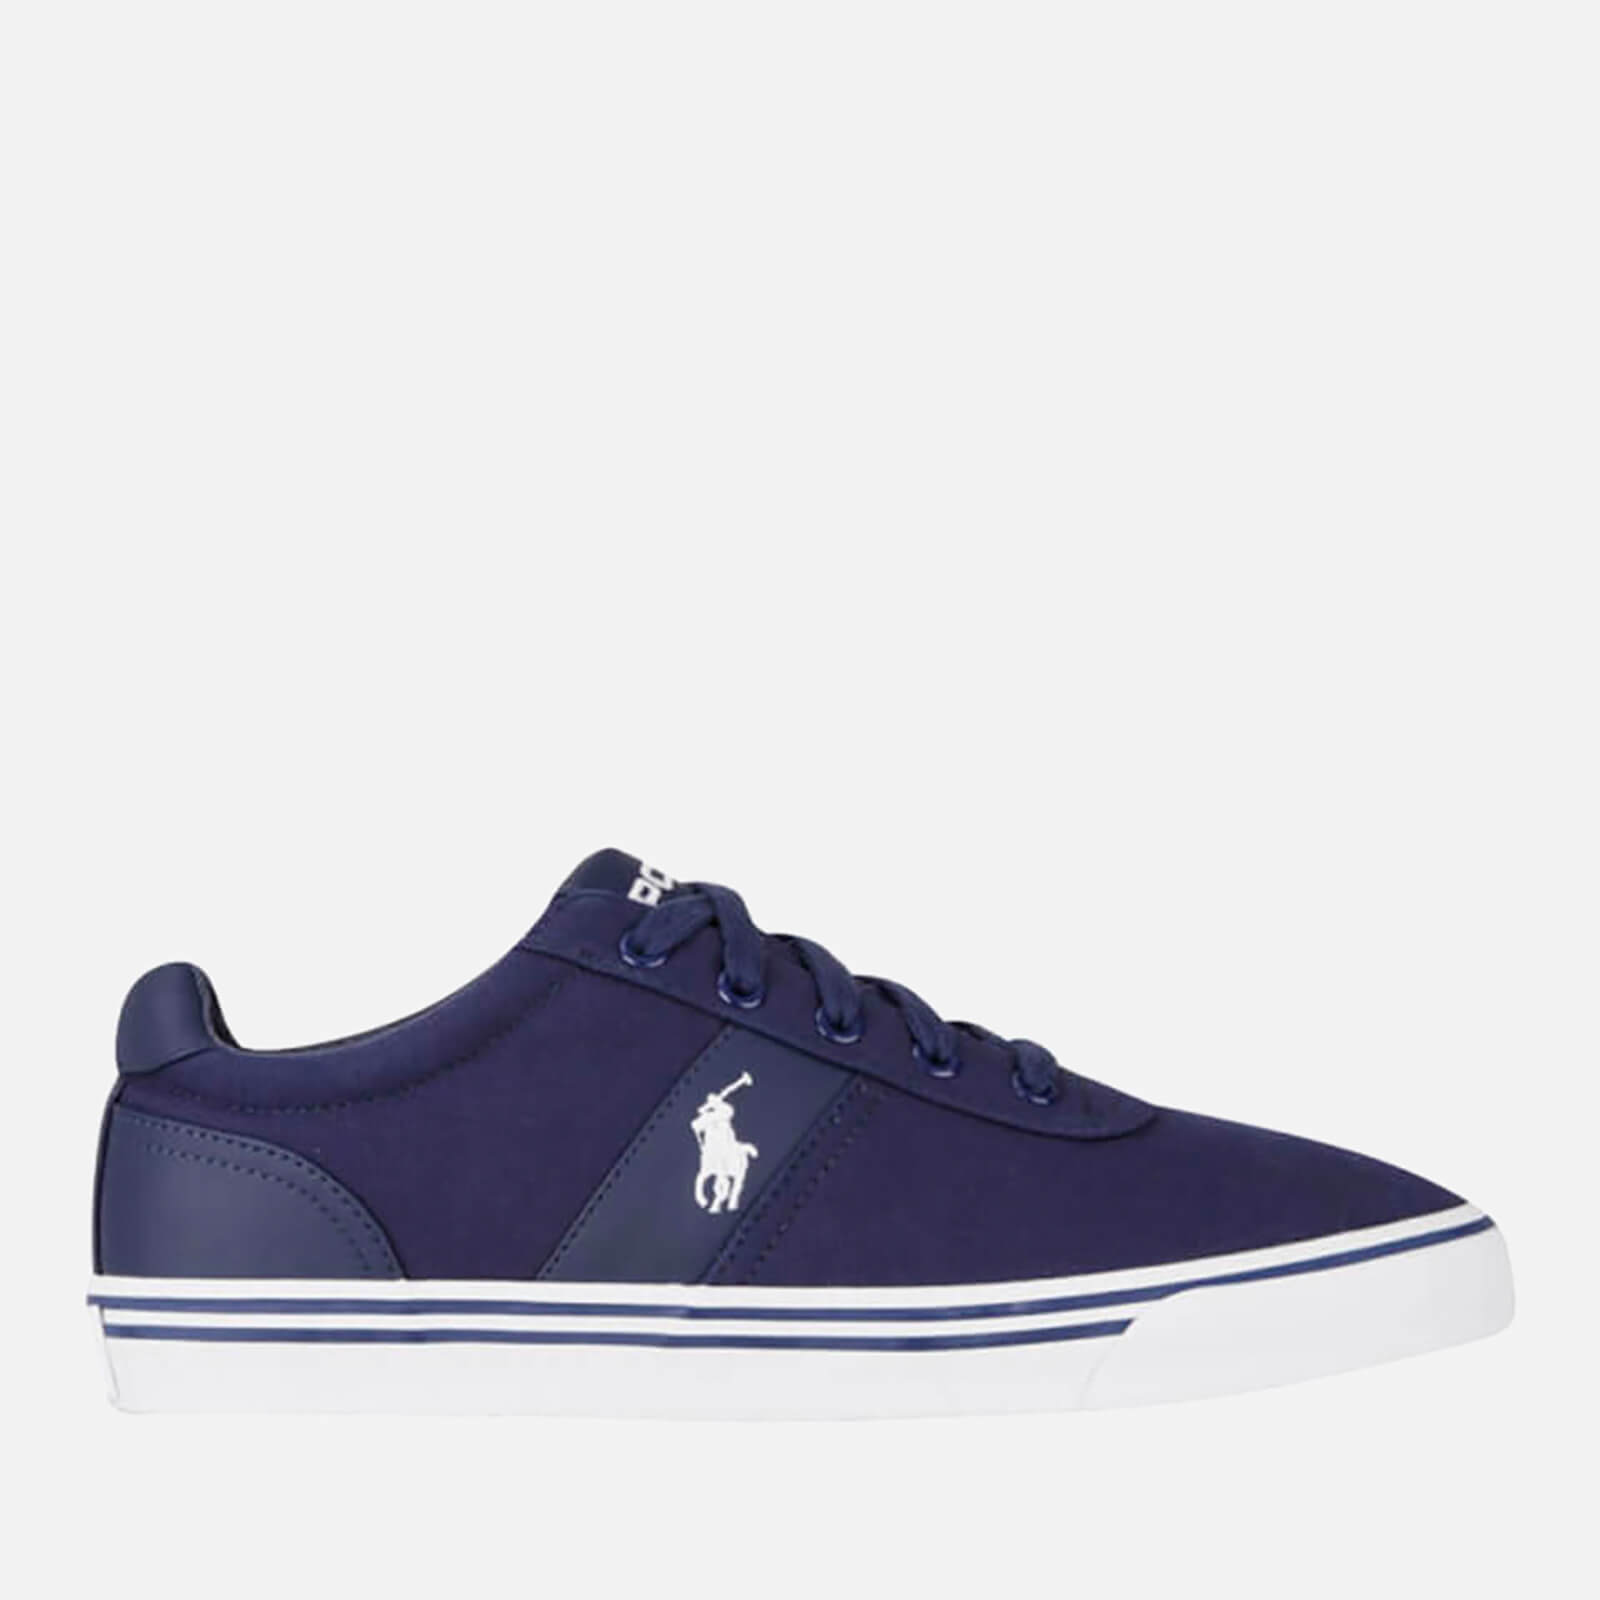 63225db25b15 Polo Ralph Lauren Men s Hanford Trainers - Newport Navy - Free UK Delivery  over £50